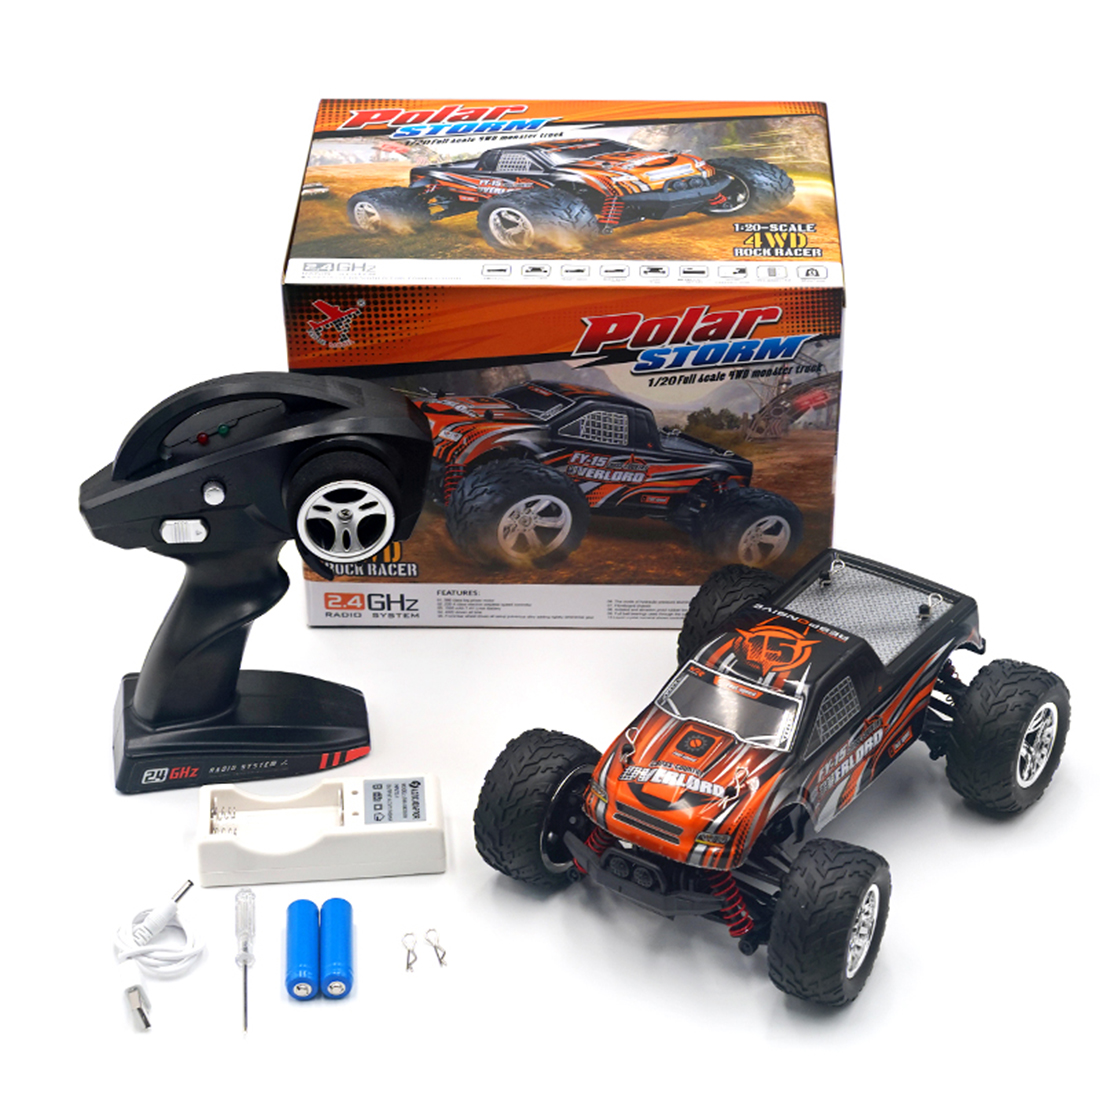 Rowsfire FY 15 1:20 2.4G 4WD High-speed Remote Control Off-road Vehicle RC Sports Car Toys for Kids Assembly Toy Black+Orange